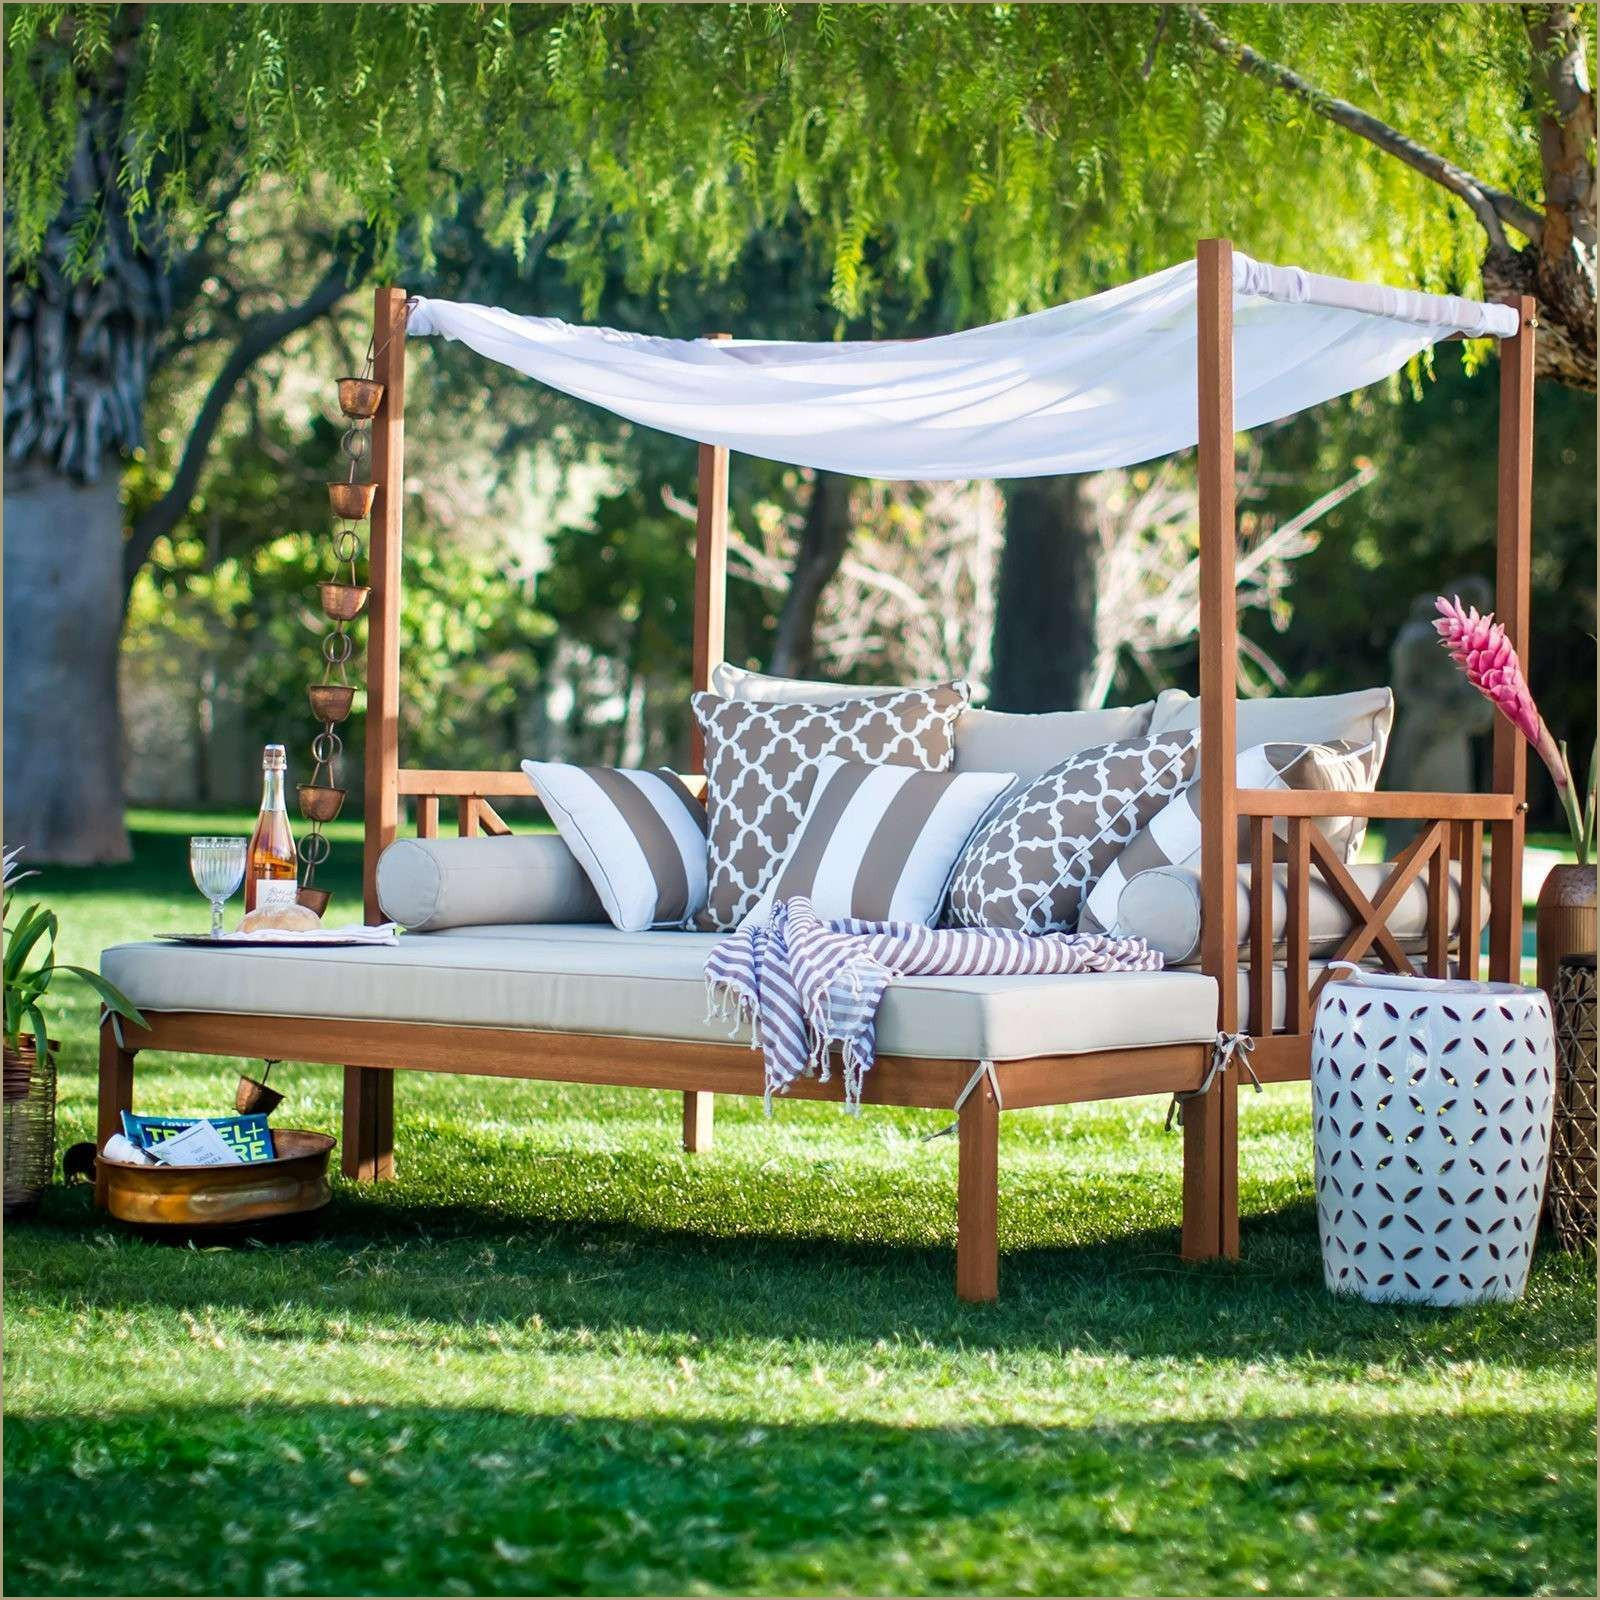 Daybed Garten  Fearsome Home Depot Chairs Sale Daybeds Outdoor Furniture